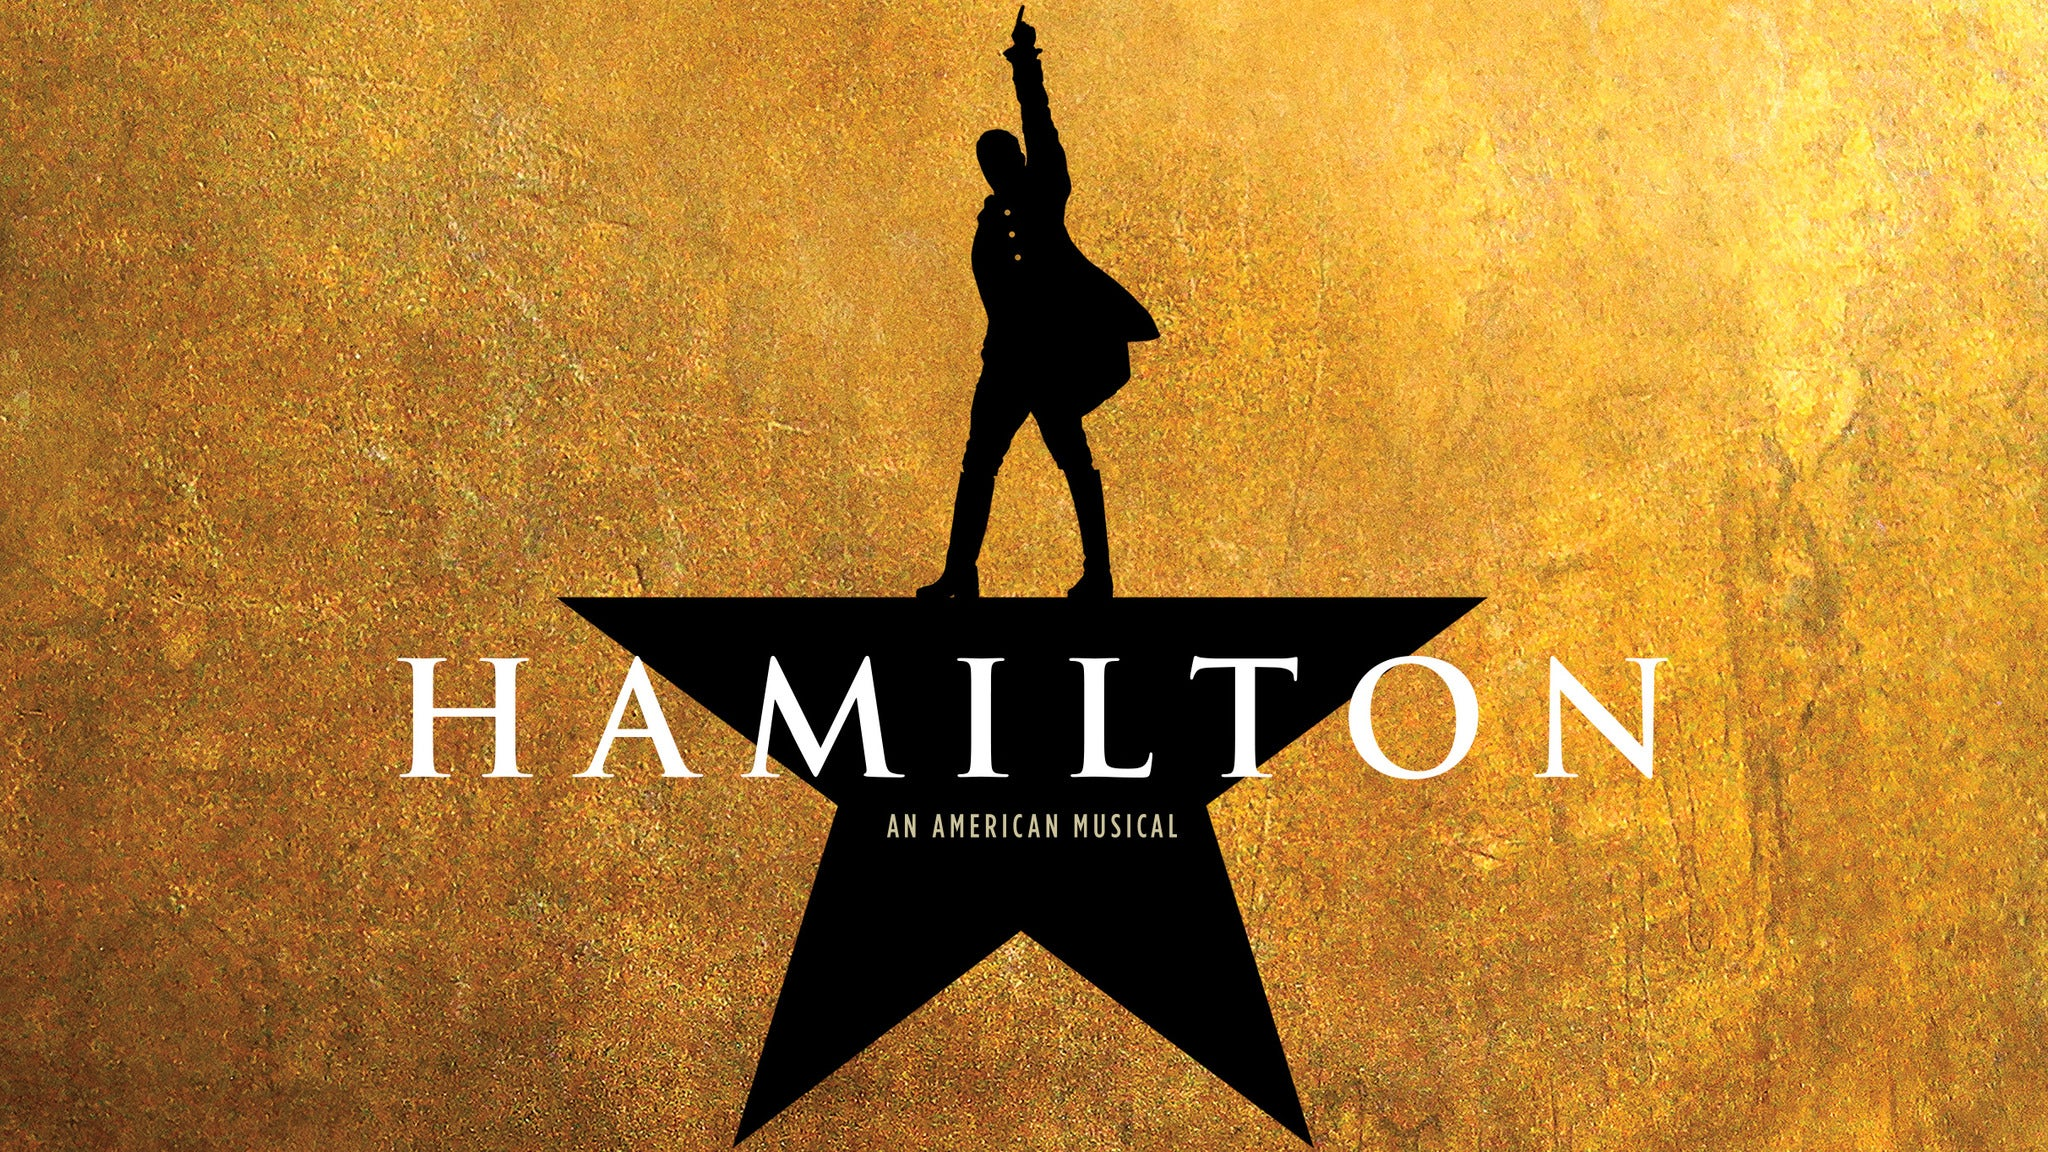 Hamilton (Chicago) at The PrivateBank Theatre - Chicago, IL 60602